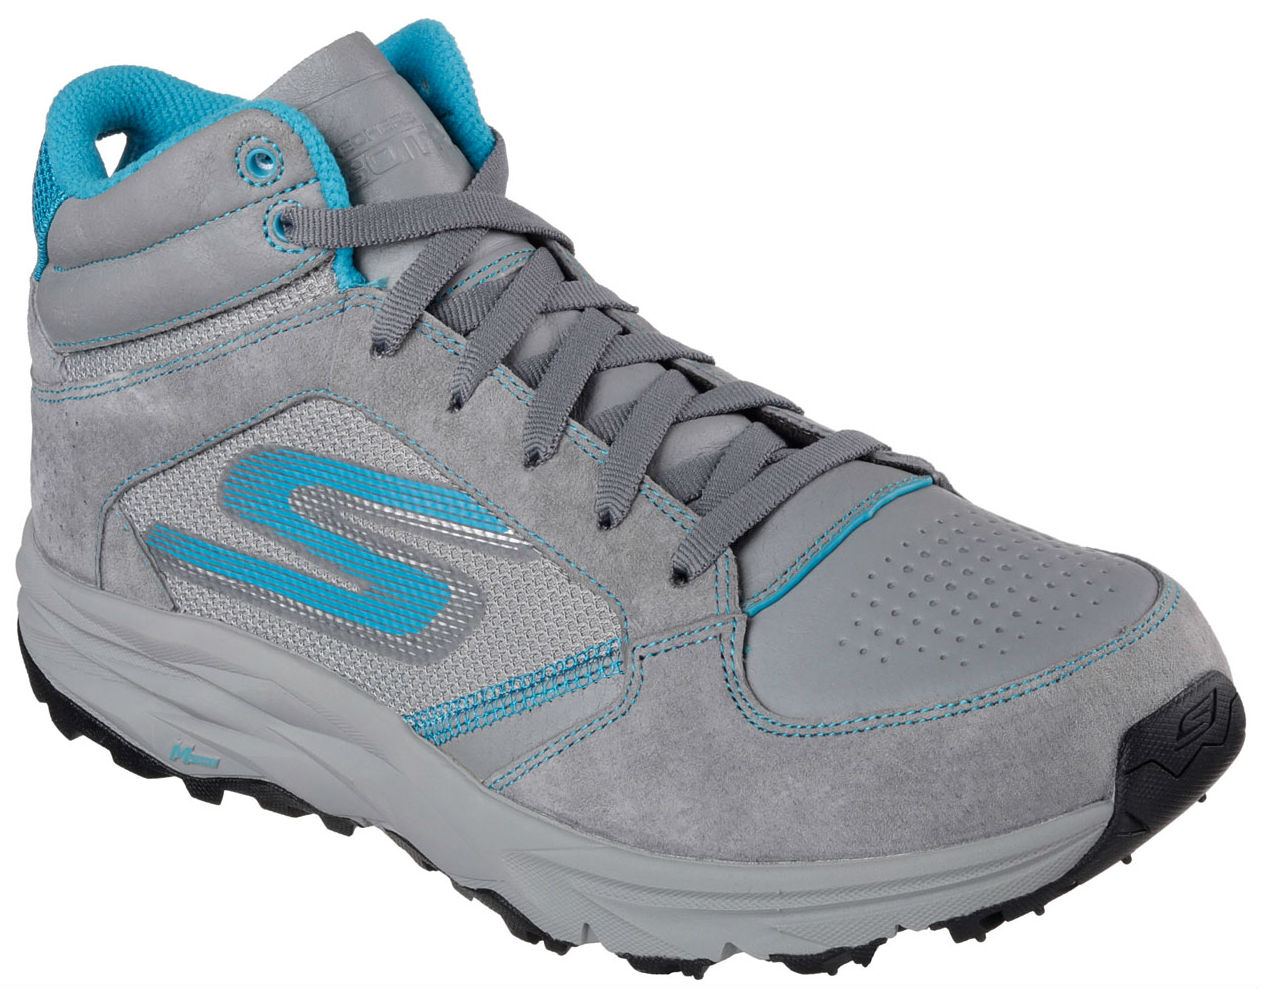 skechers womens hiking boots